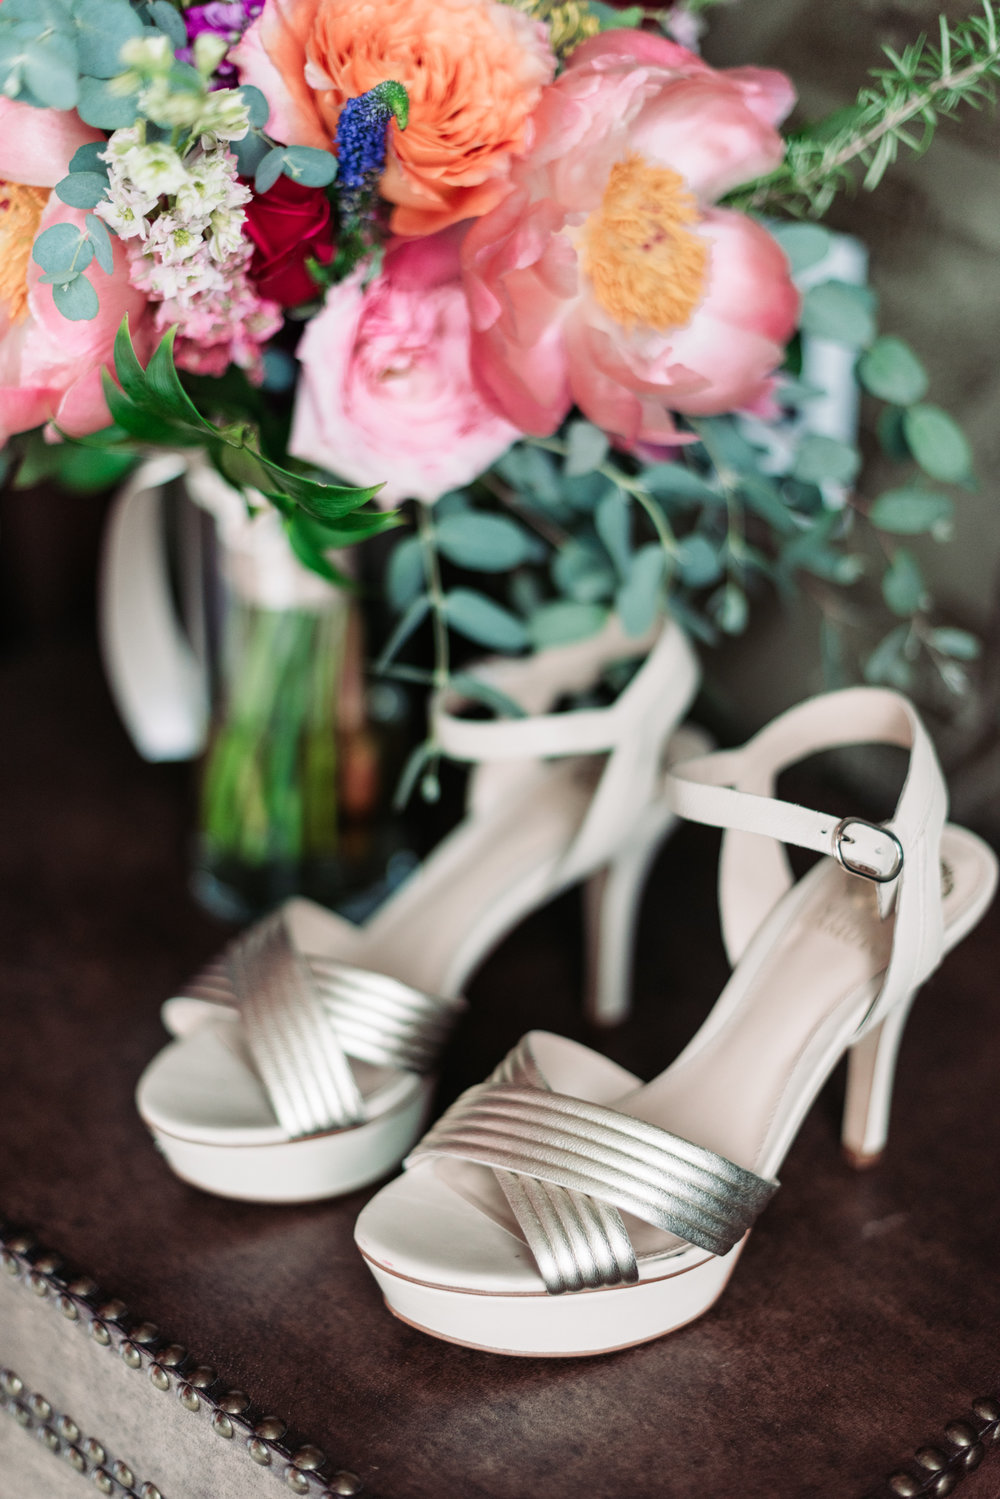 Wedding photography shoes heels wedding details floral design